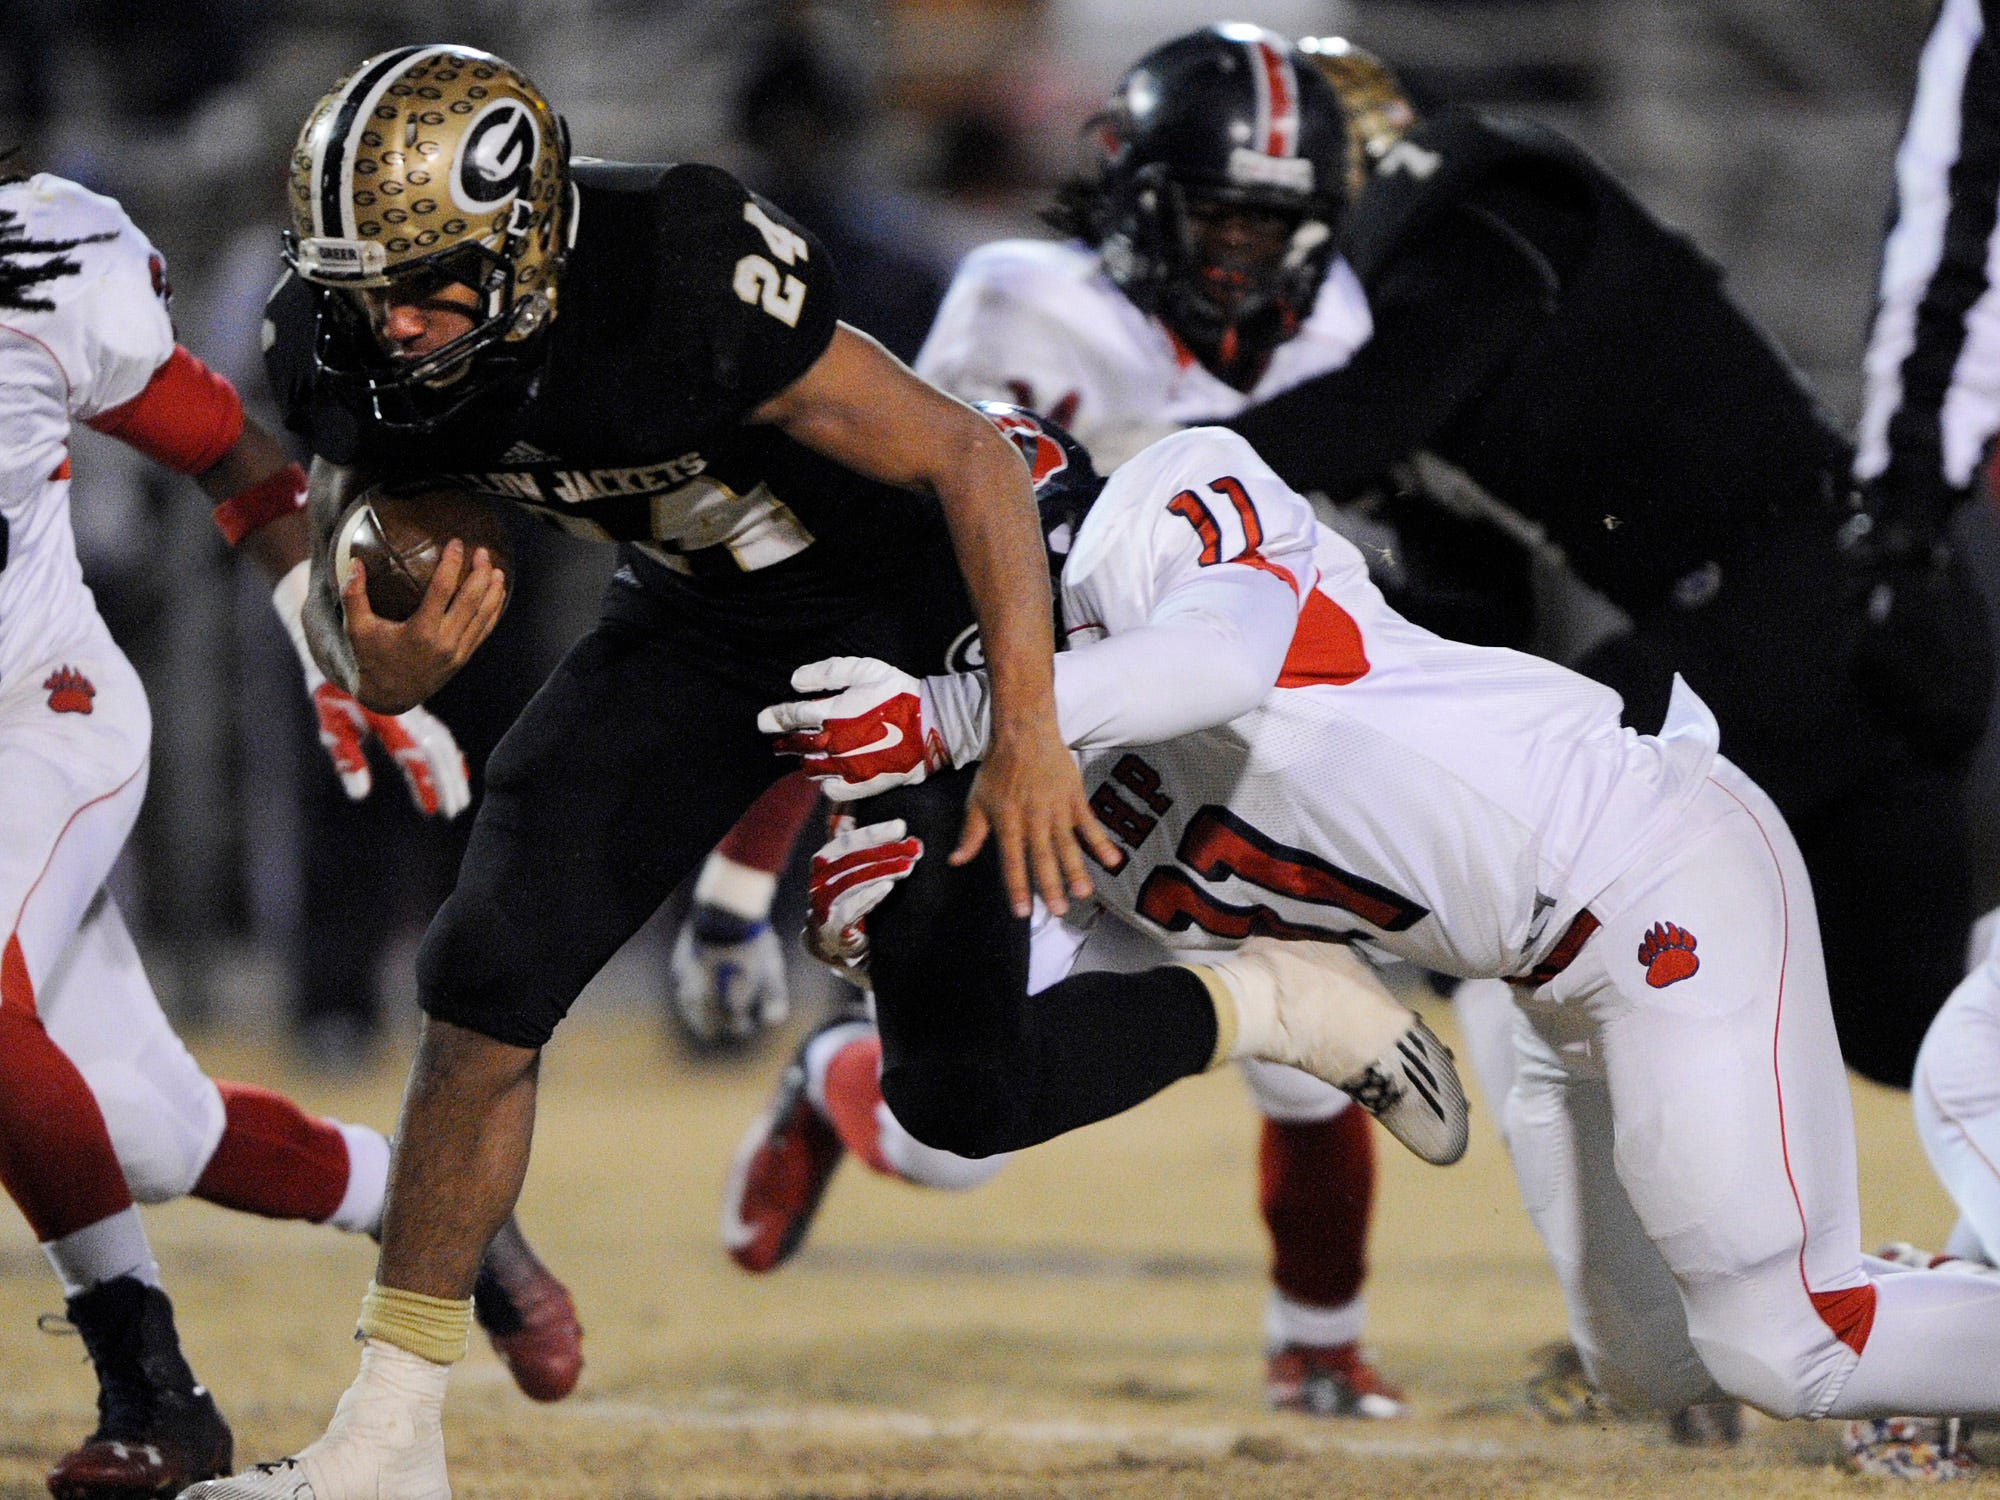 Greer's Adrian McGee (24) is caught by B-HP's TC Mccullough (11).